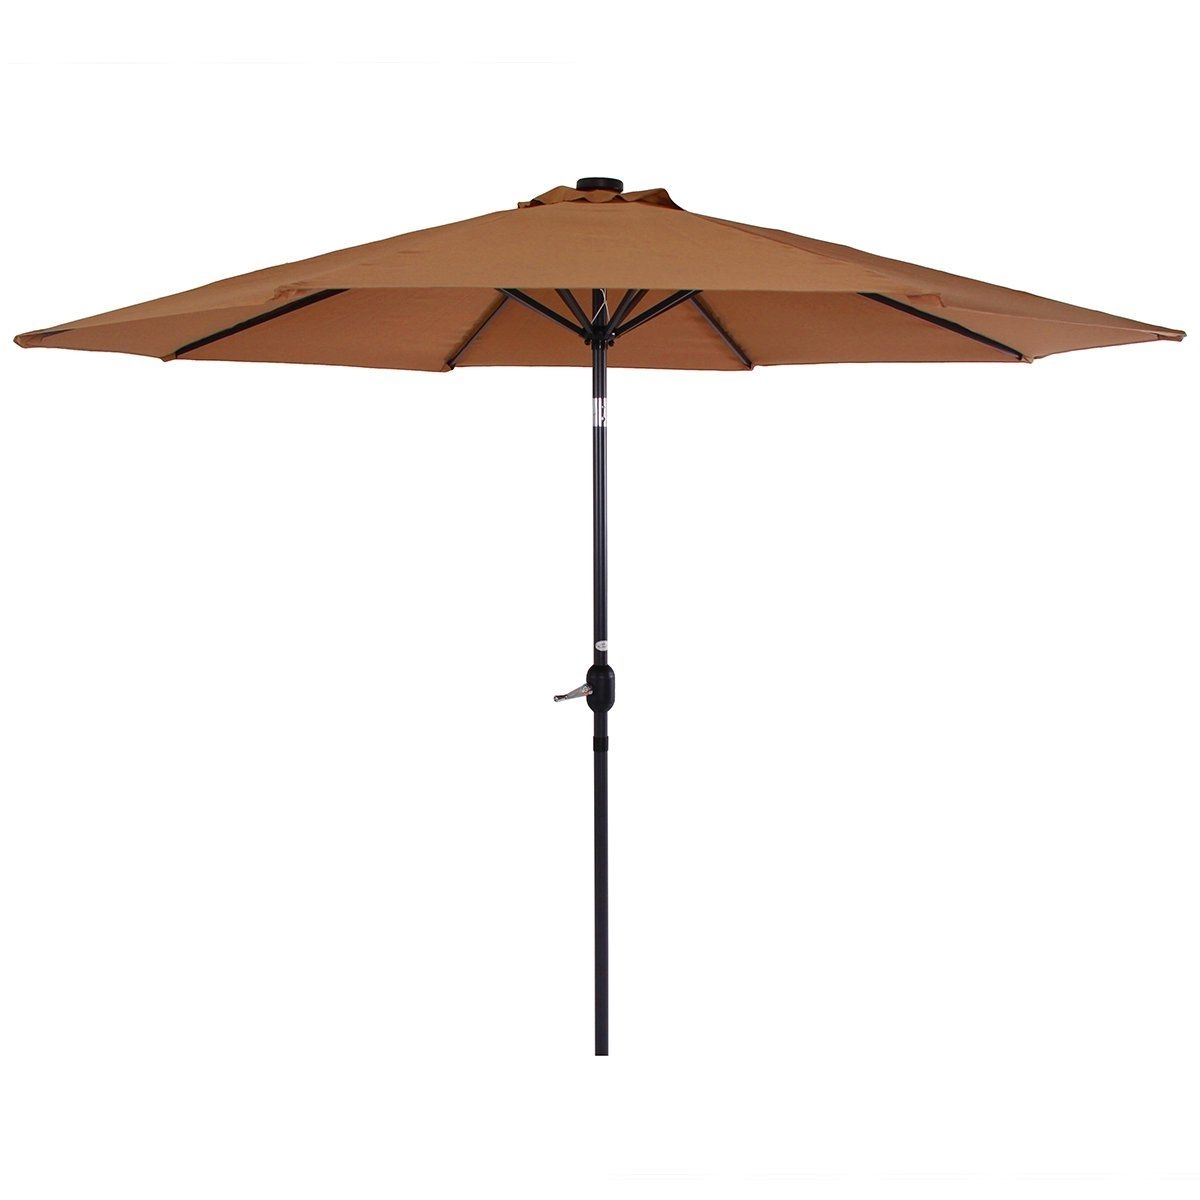 Phi Villa 9 Ft Patio Umbrella Premium Deluxe Outdoor Umbrella With Within 2018 9 Ft Patio Umbrellas (View 19 of 20)